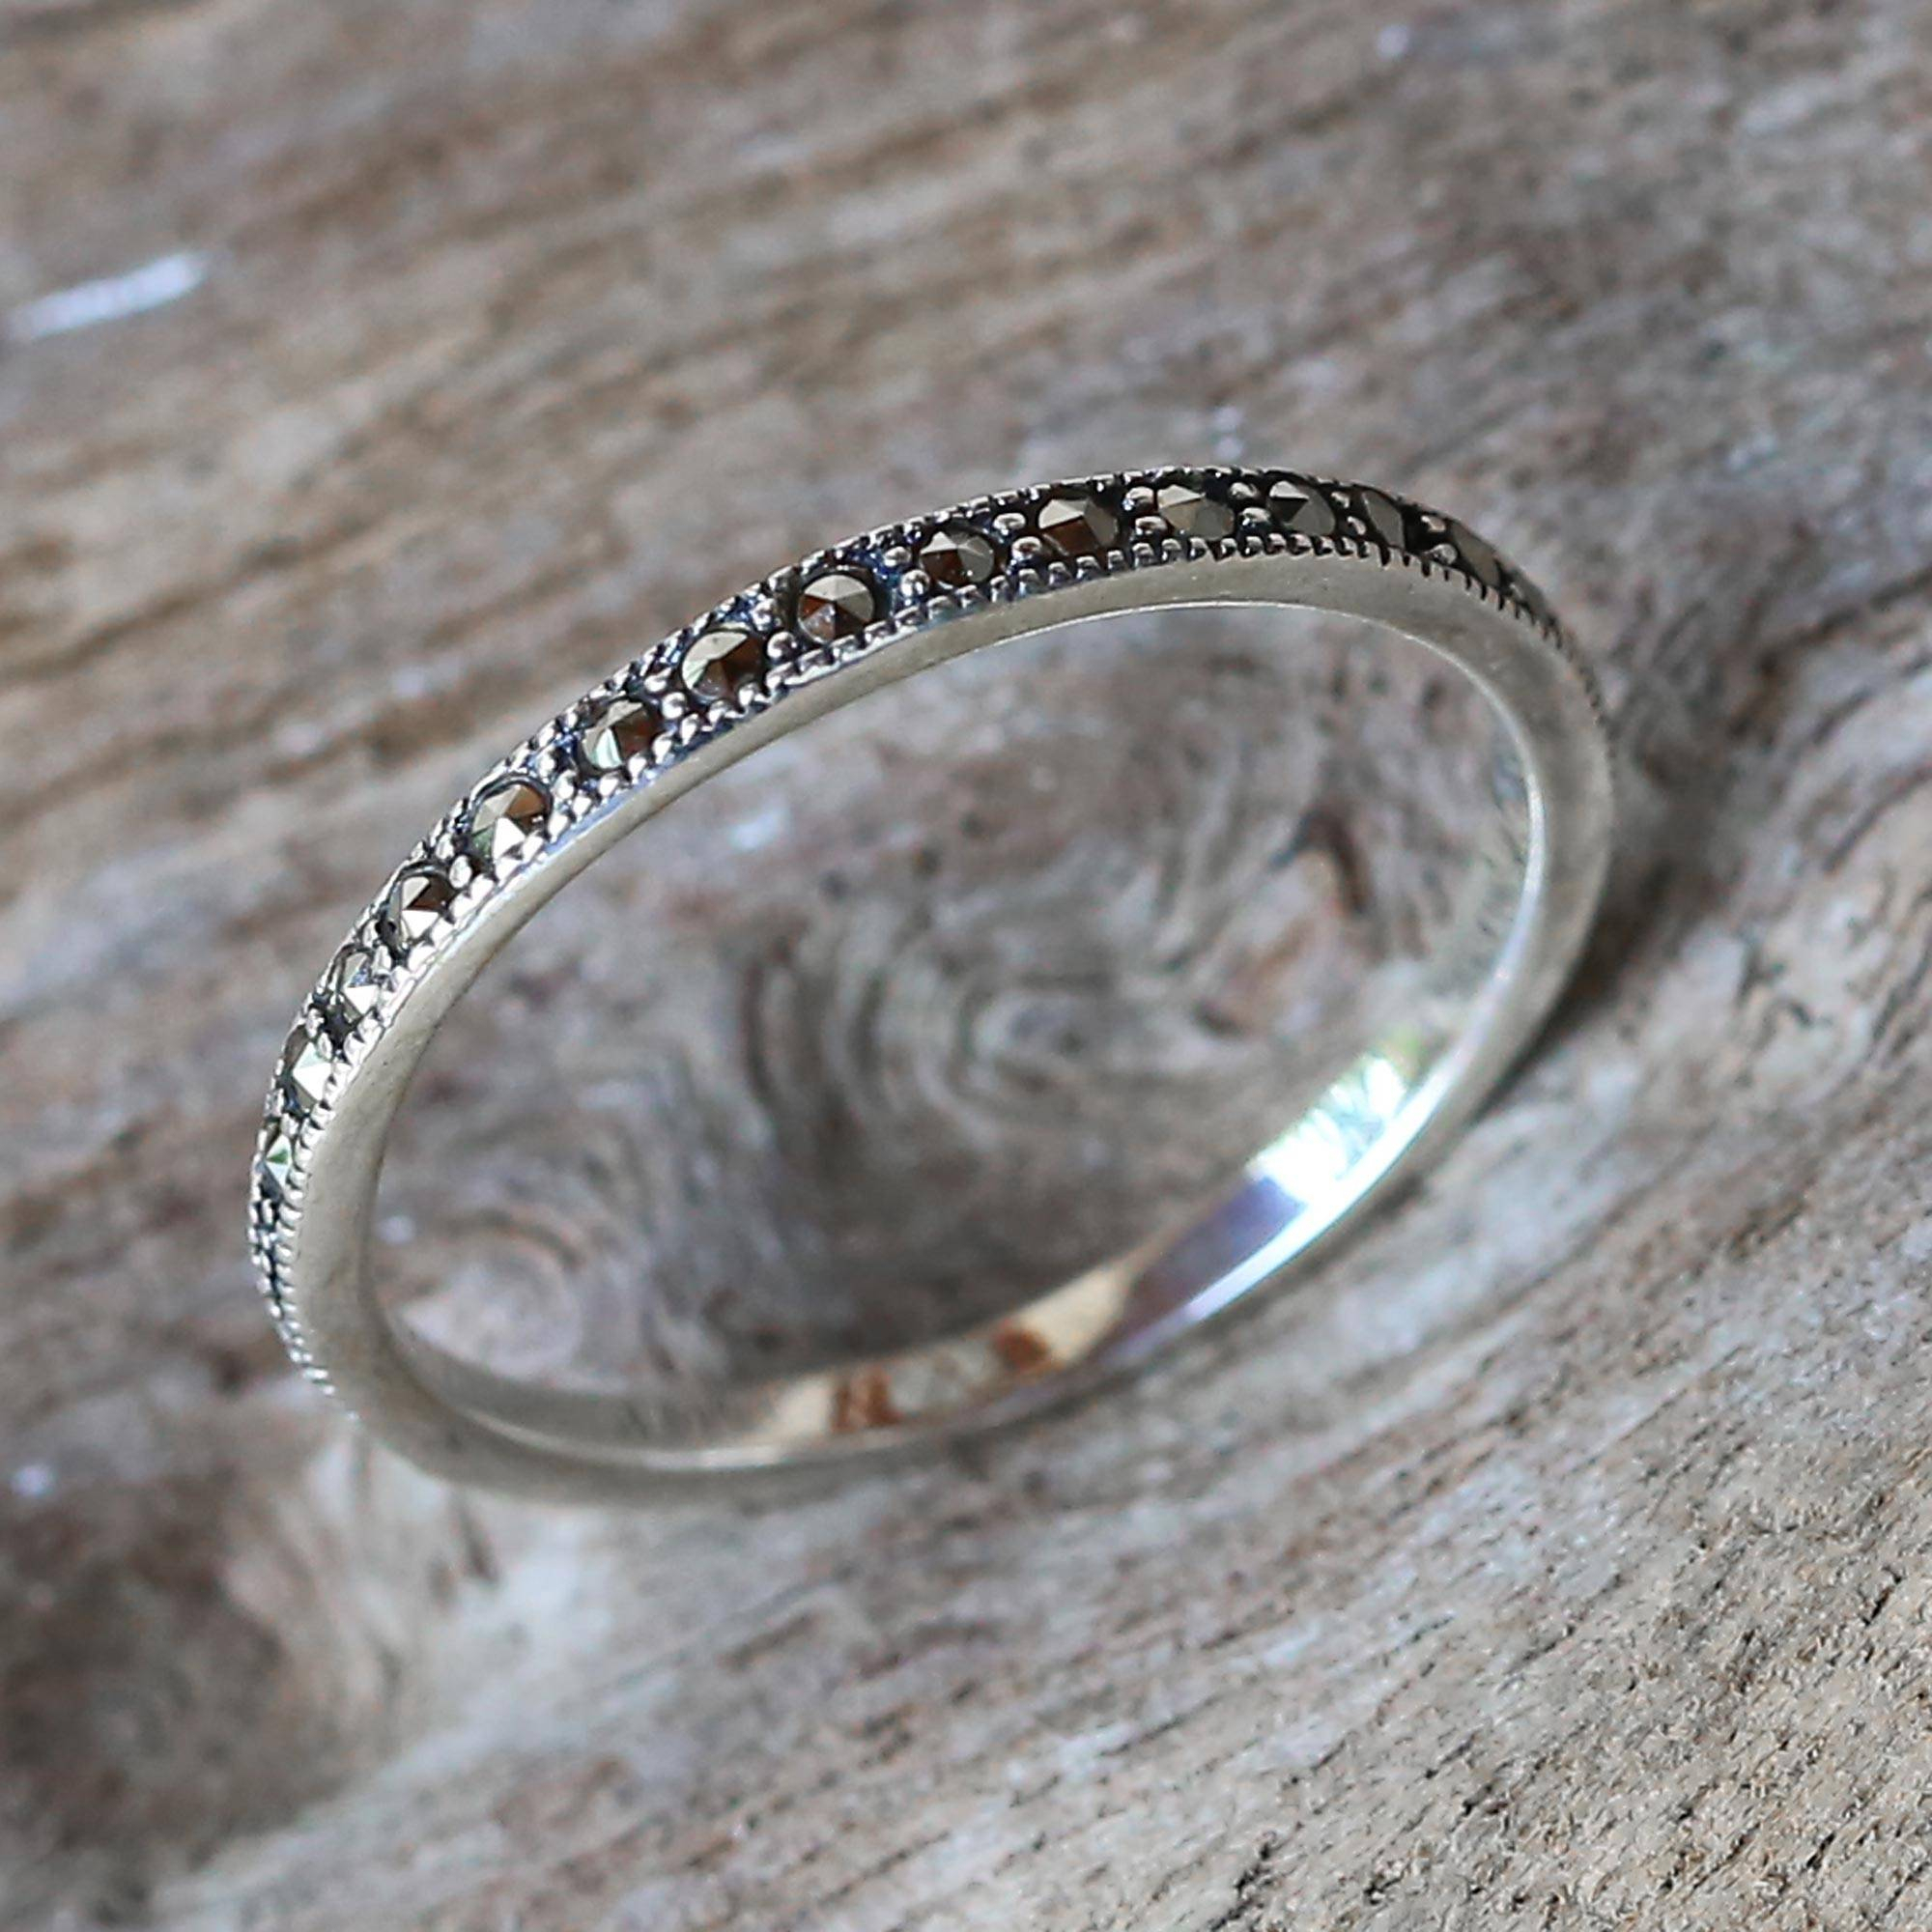 Marcasite And Sterling Silver Band Ring From Thailand, 'glistening Road' Intended For Latest Simple Sparkling Band Rings (View 17 of 25)